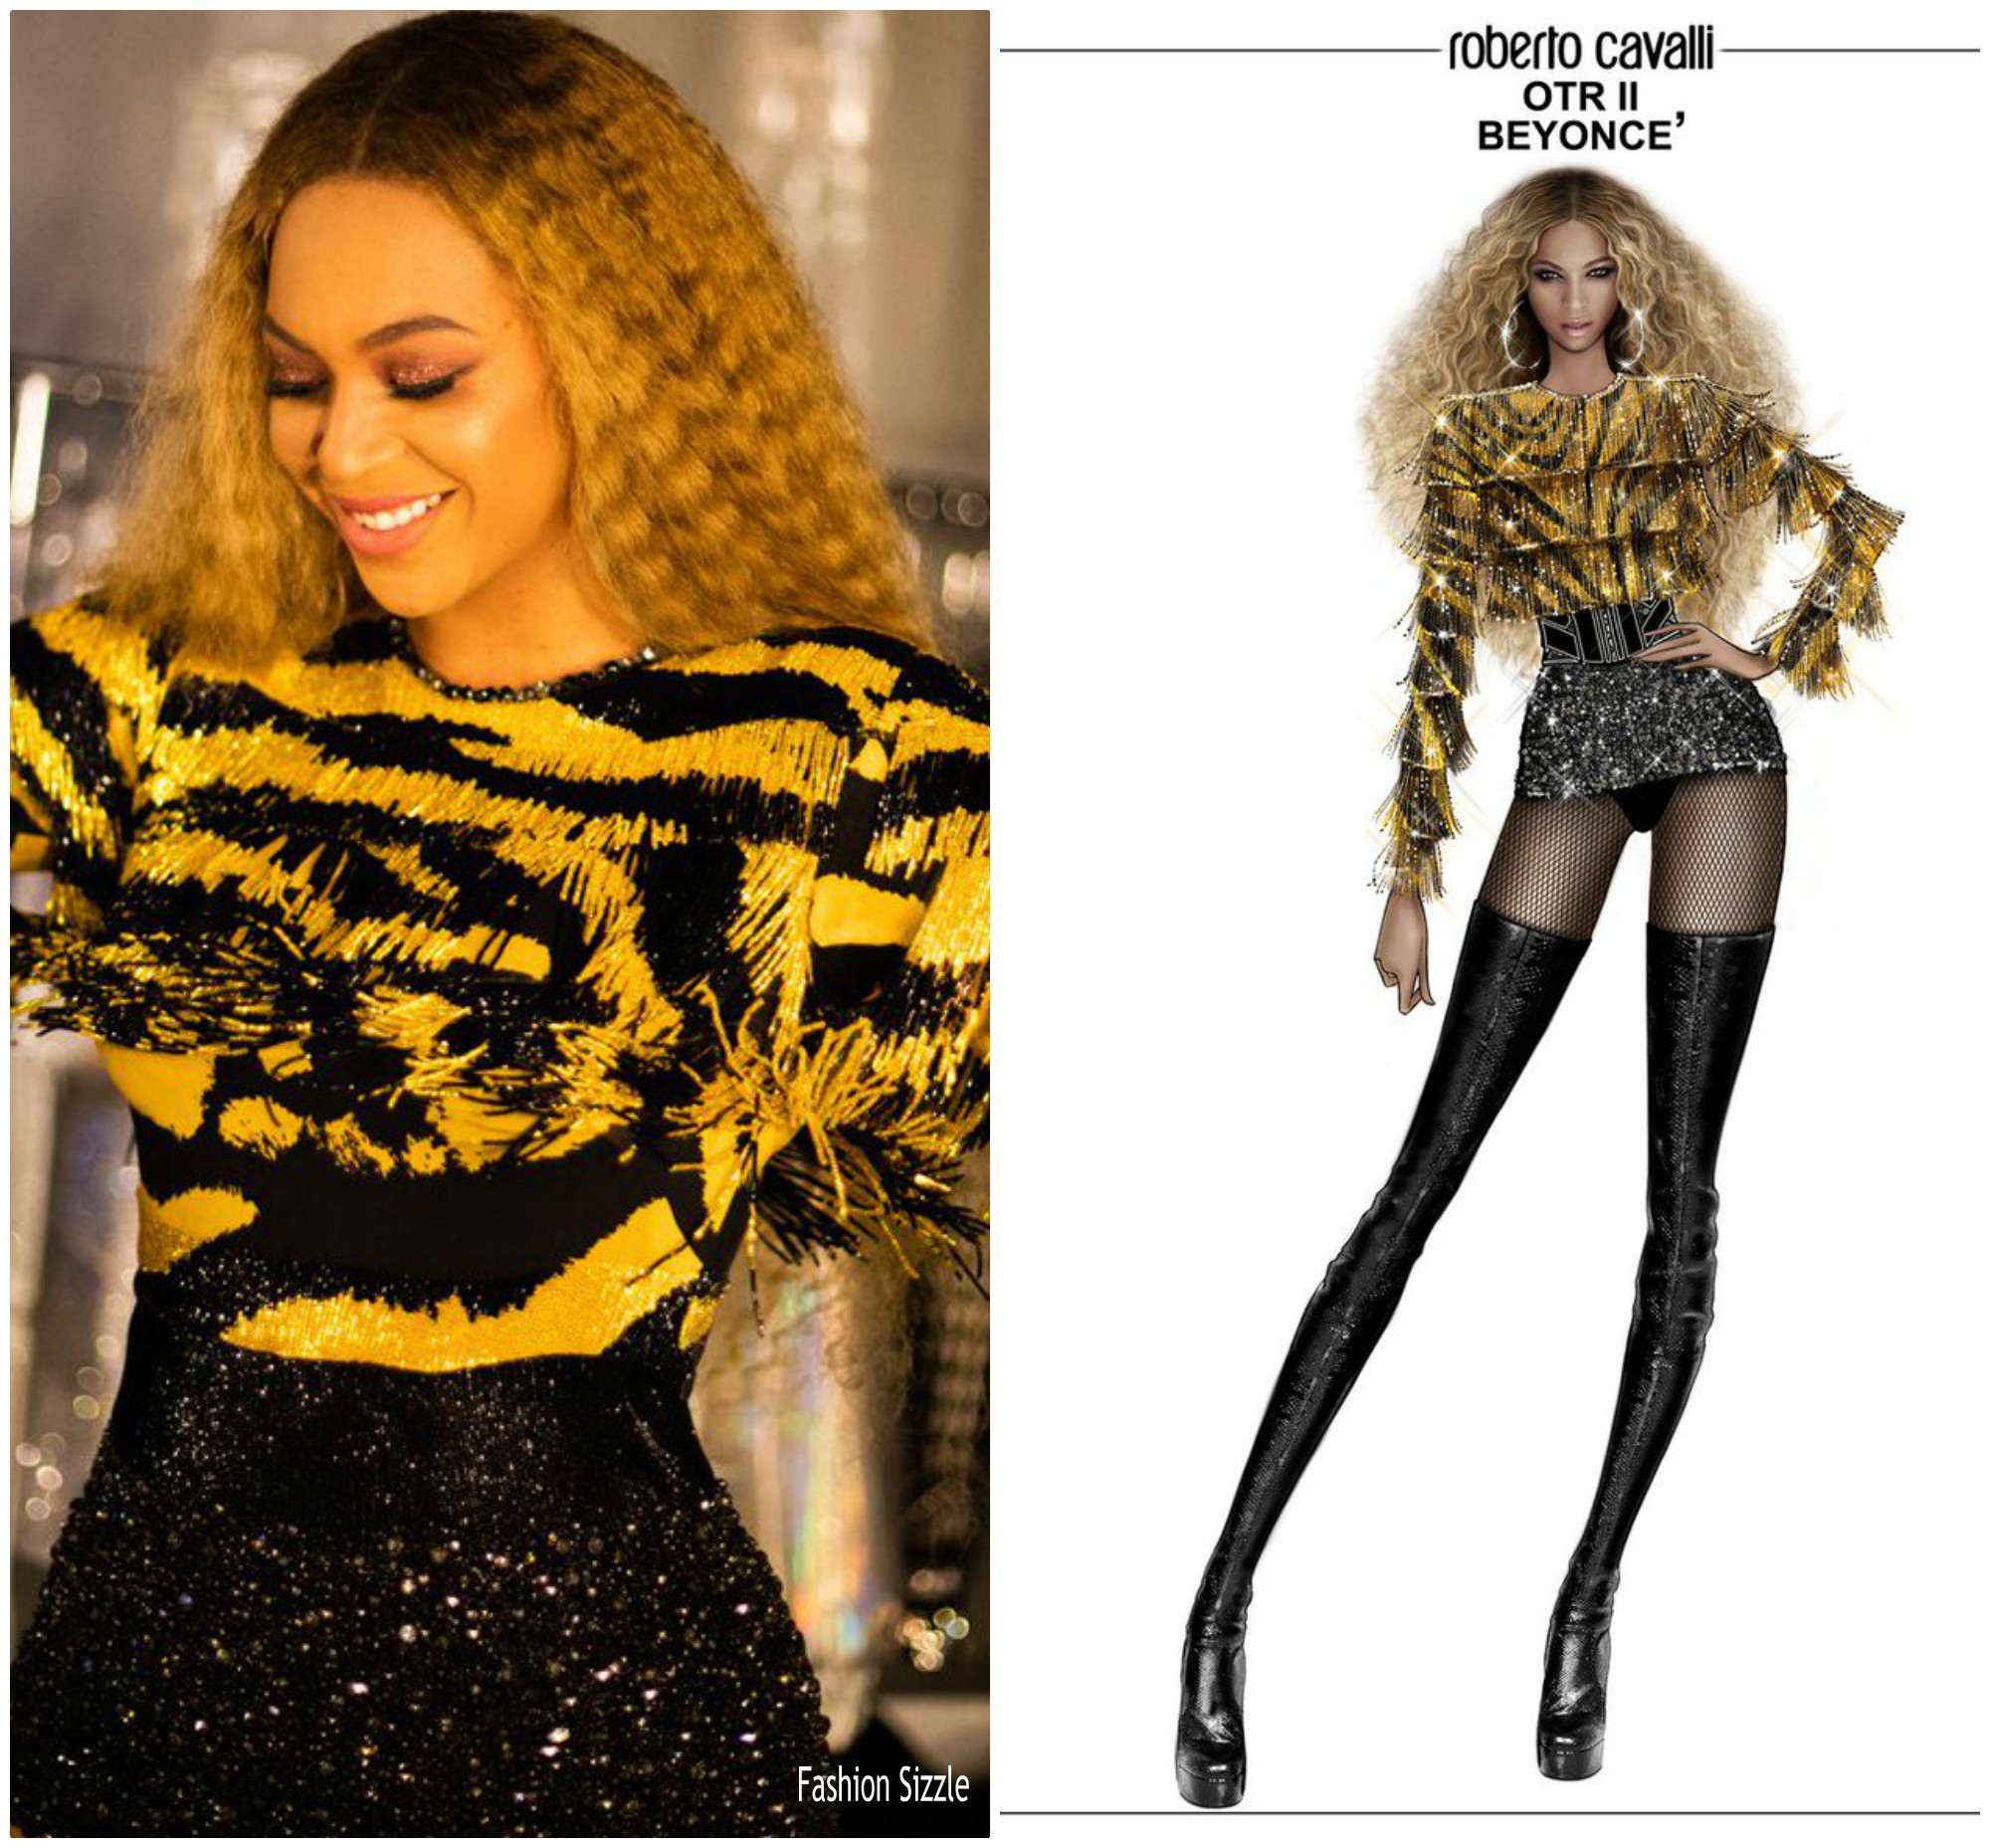 beyonce-knowles-in-roberto-vavalli-on-the-run-11-tour-milan